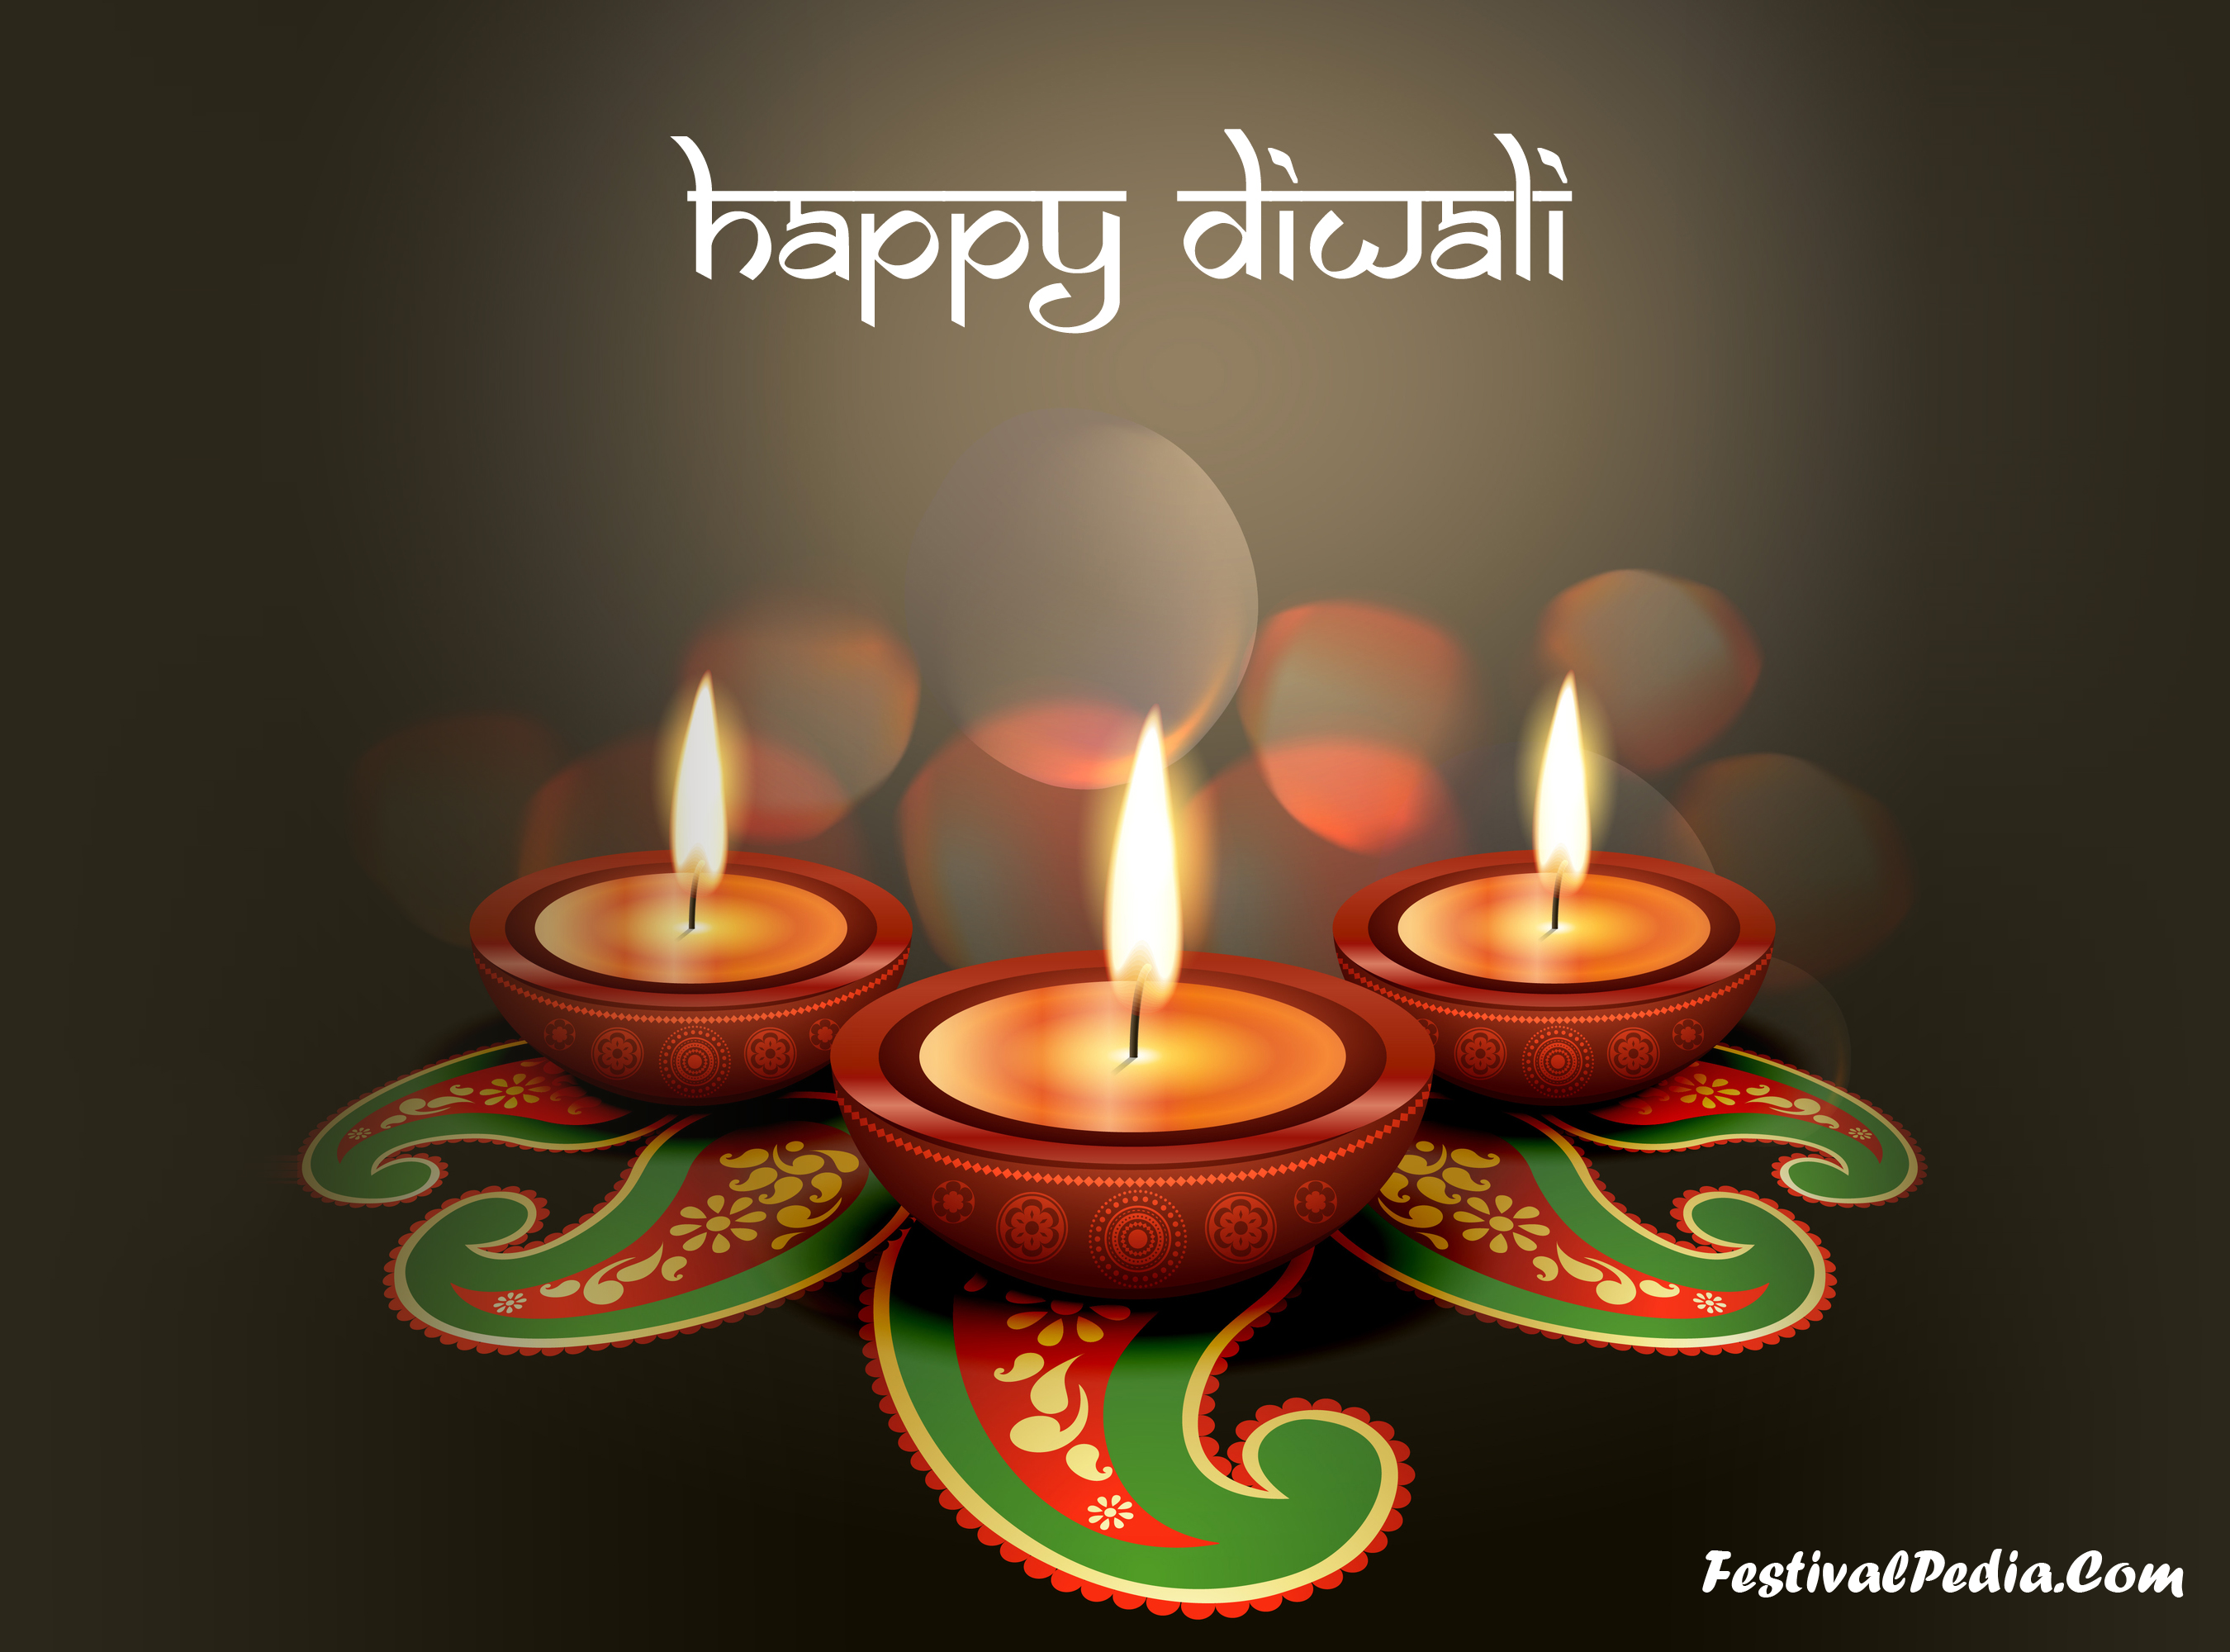 Deepawali Hd Wallpaper Diwali Wallpapers Pinterest Diwali And